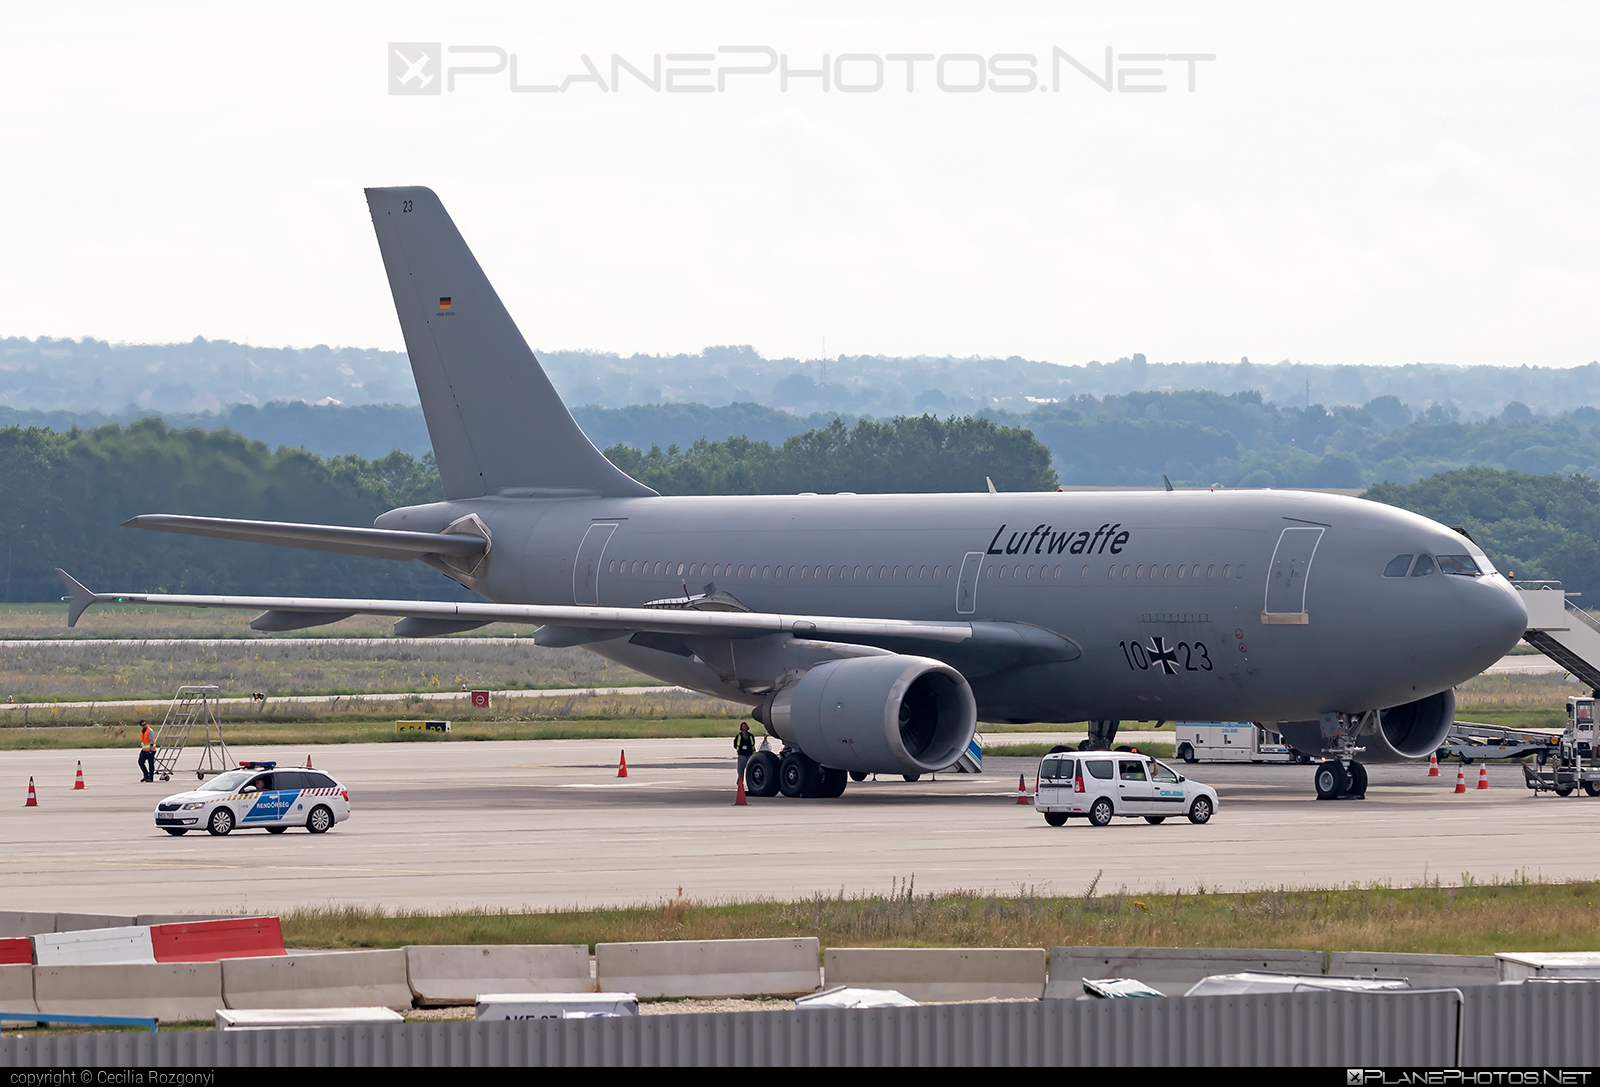 Airbus A310-304 - 10+23 operated by Luftwaffe (German Air Force) #GermanAirForce #a310 #airbus #luftwaffe